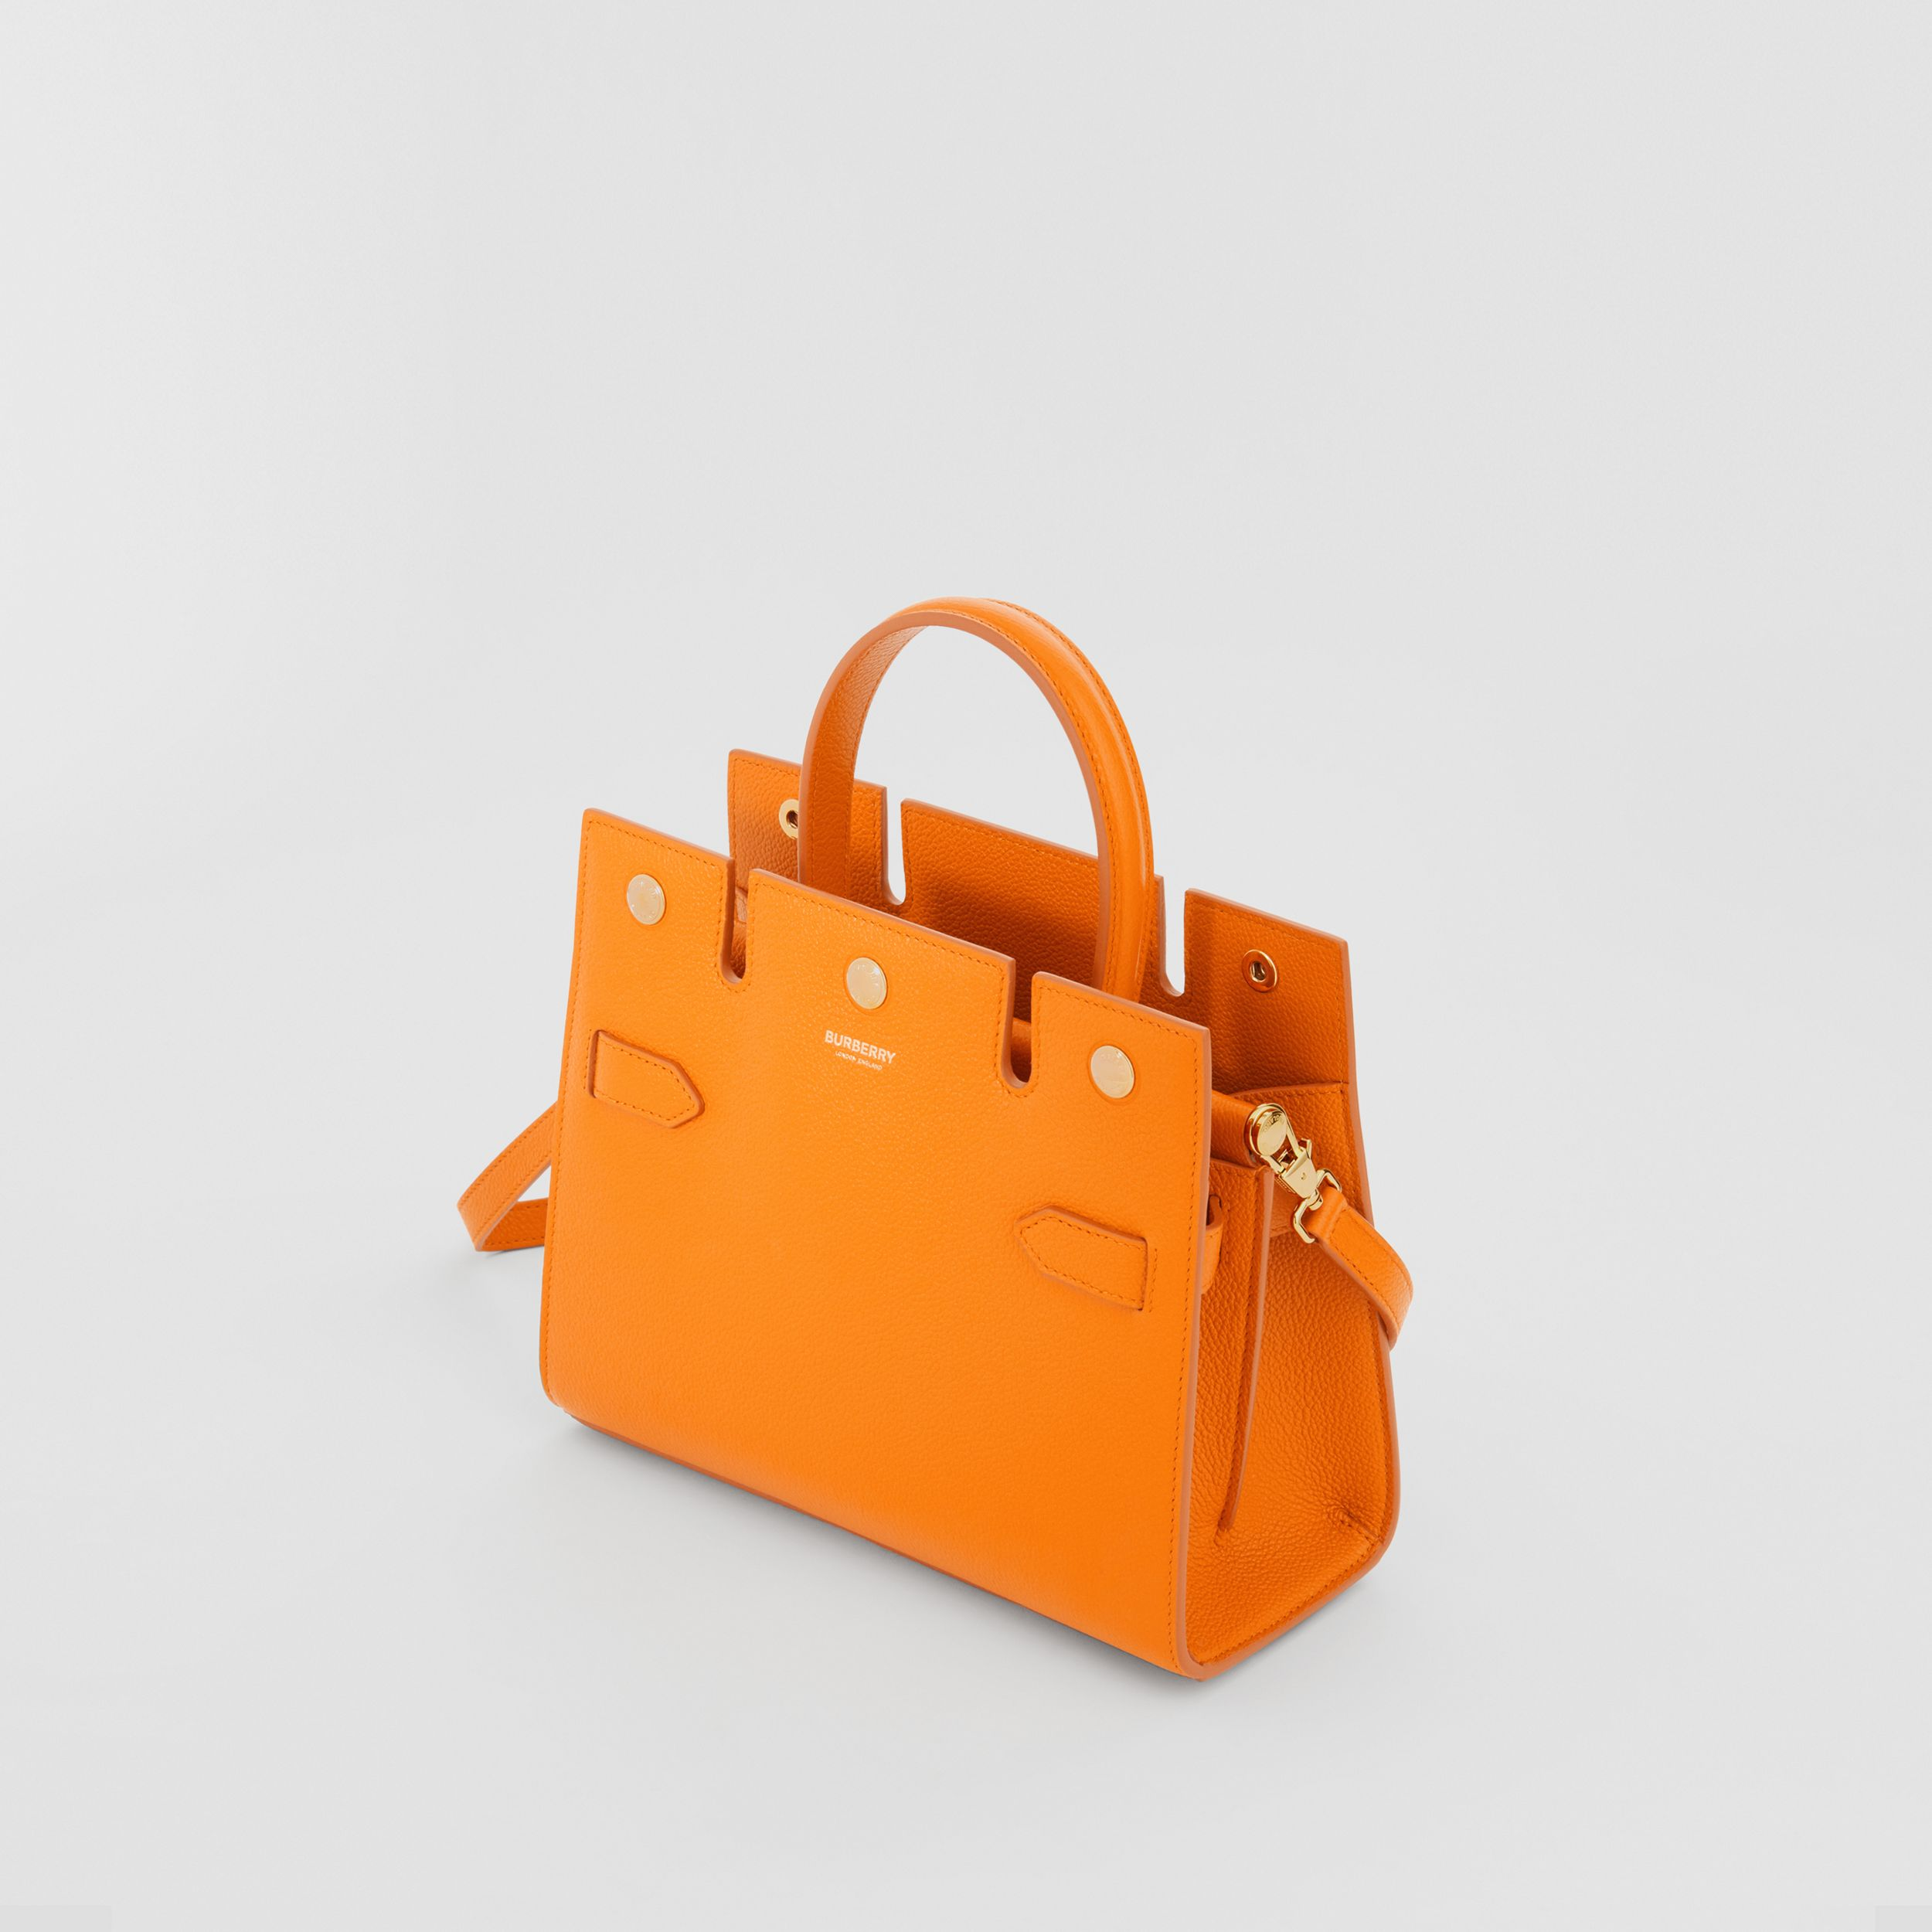 Mini Leather Title Bag in Orange - Women | Burberry - 4